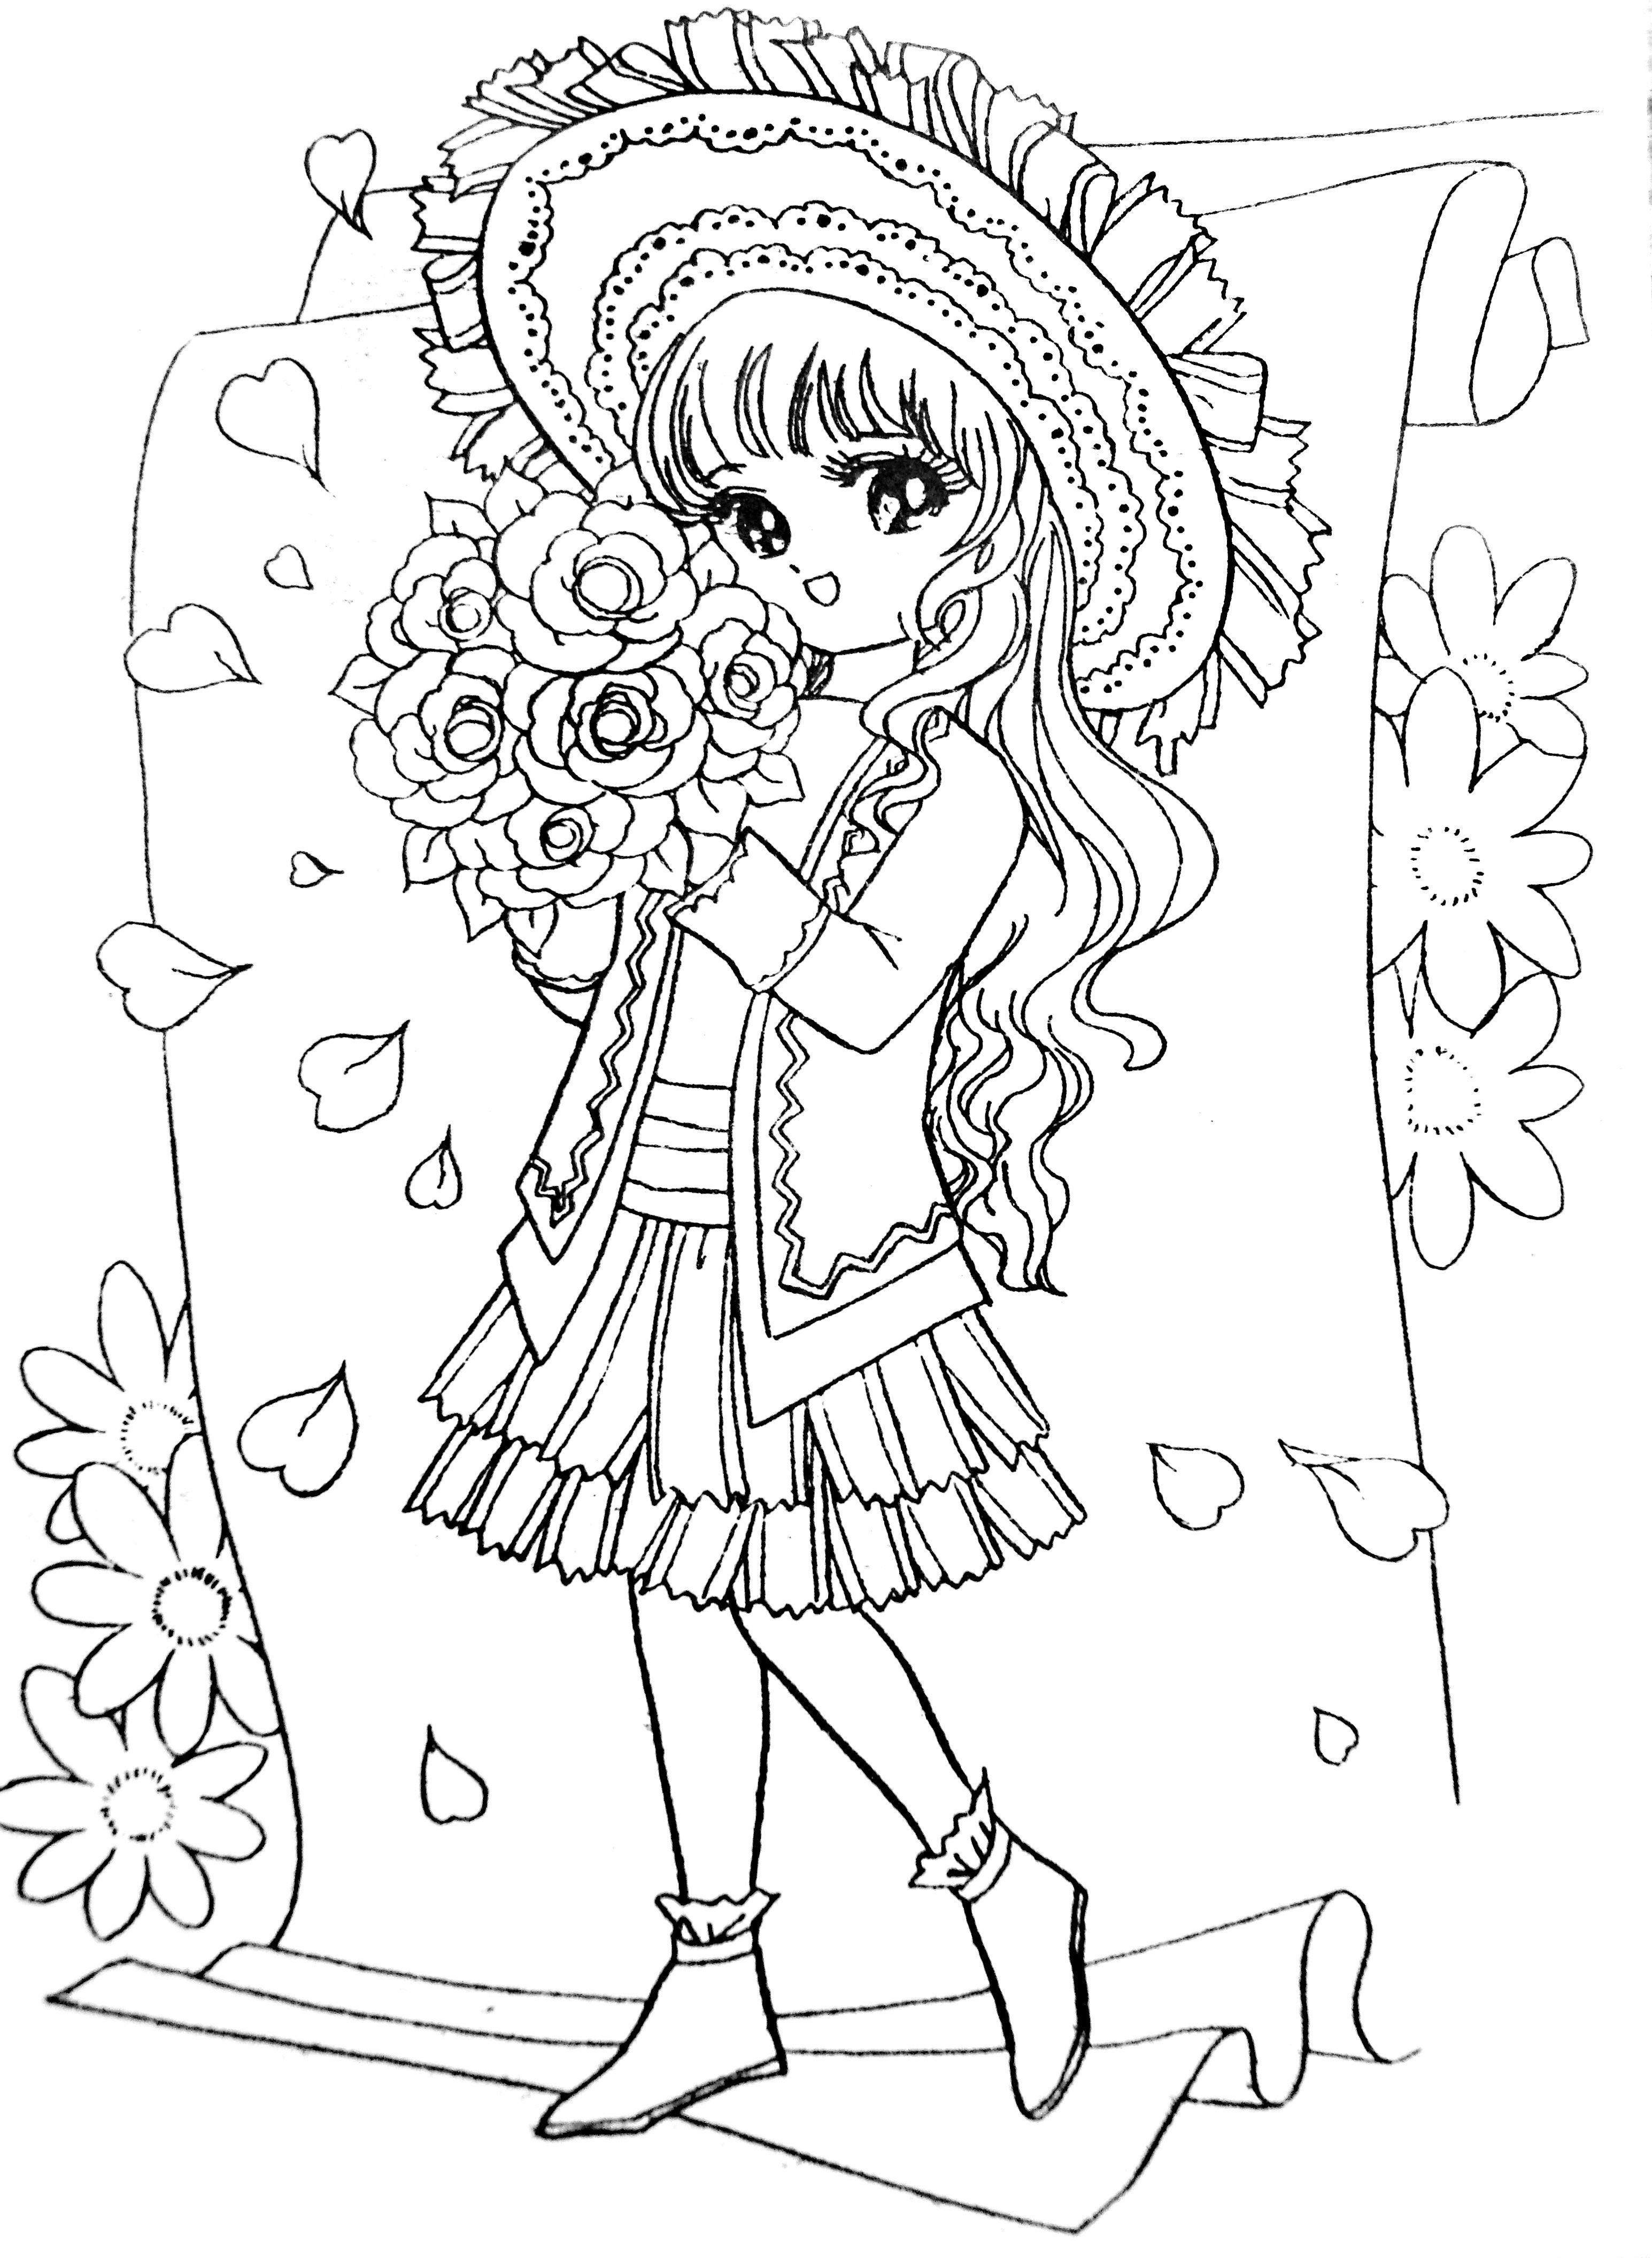 Pin by Sara Garner on Coloring pages | Pinterest | Coloring books ...